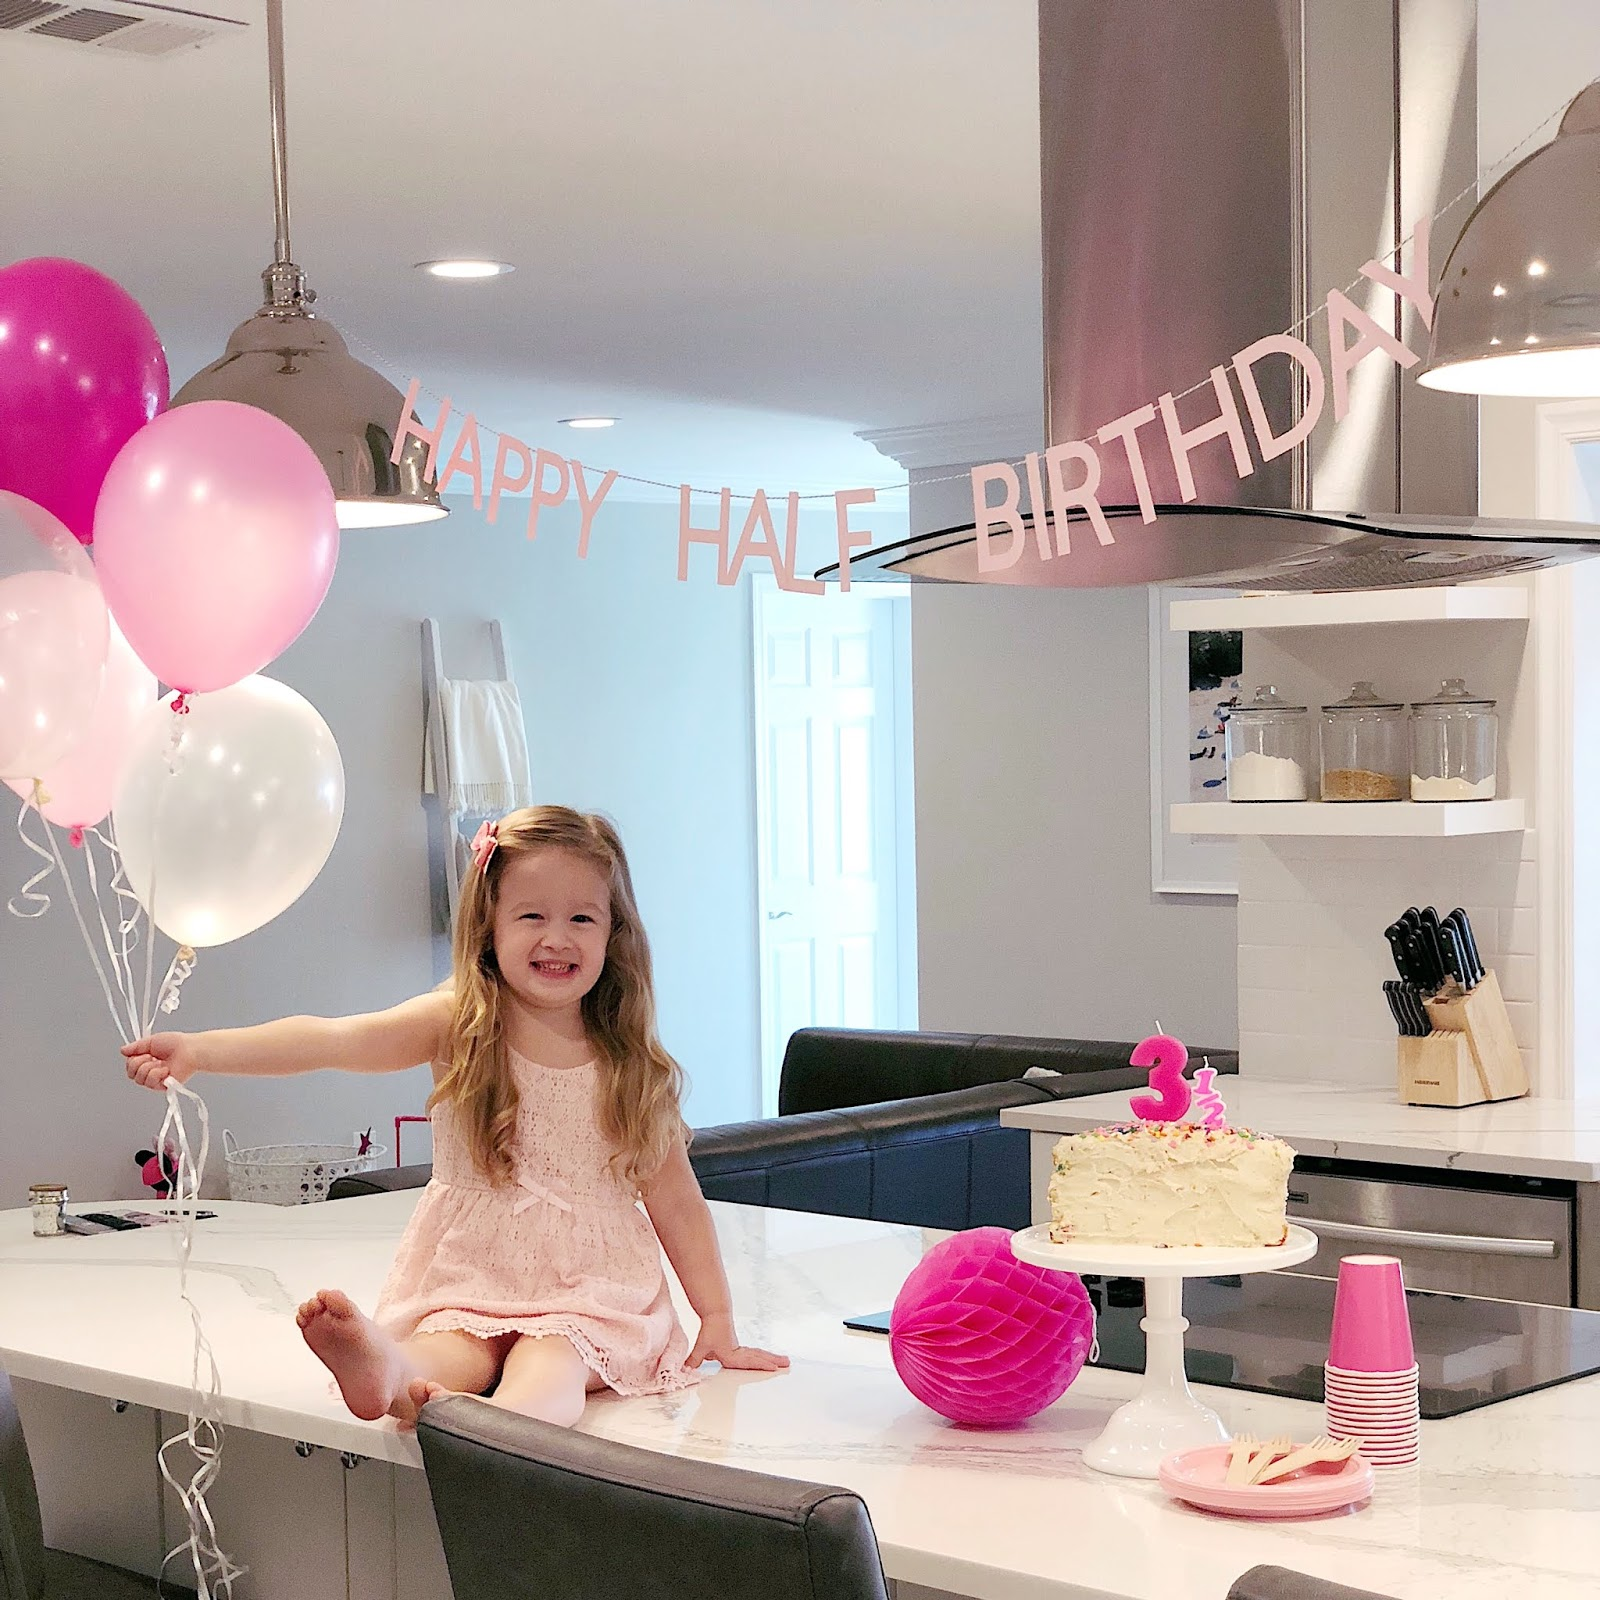 How to Throw a Half Birthday Party by The Celebration Stylist